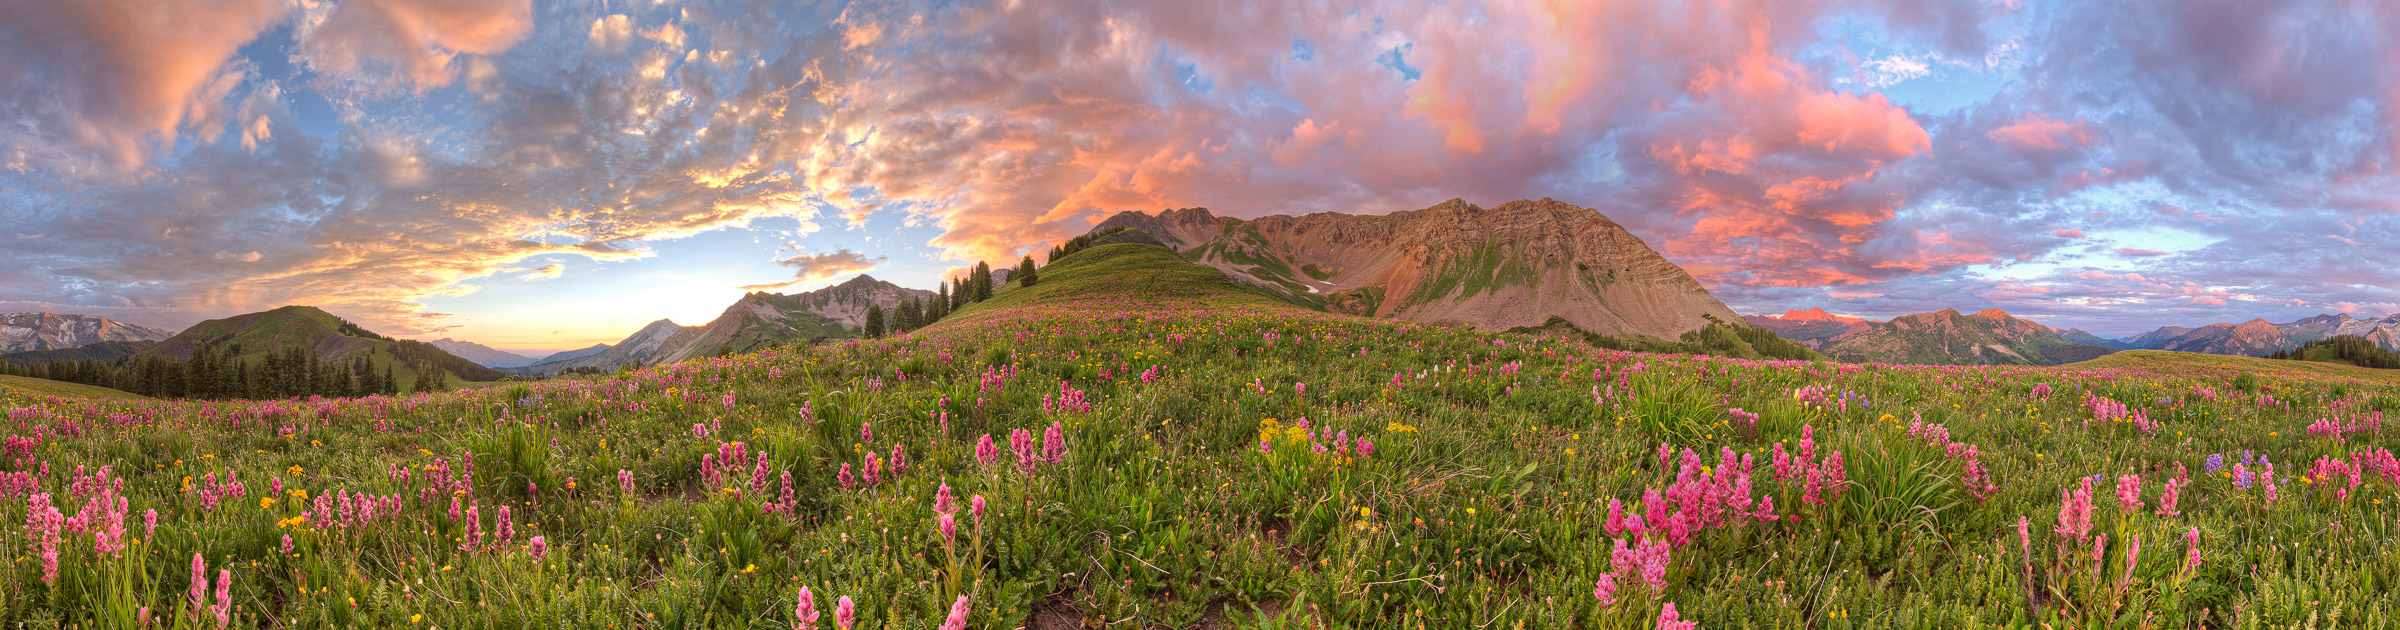 landscape image of a grassy field and beautiful hill   Life Coaching & Counseling   Judy O'Neill   Boulder, CO 80305